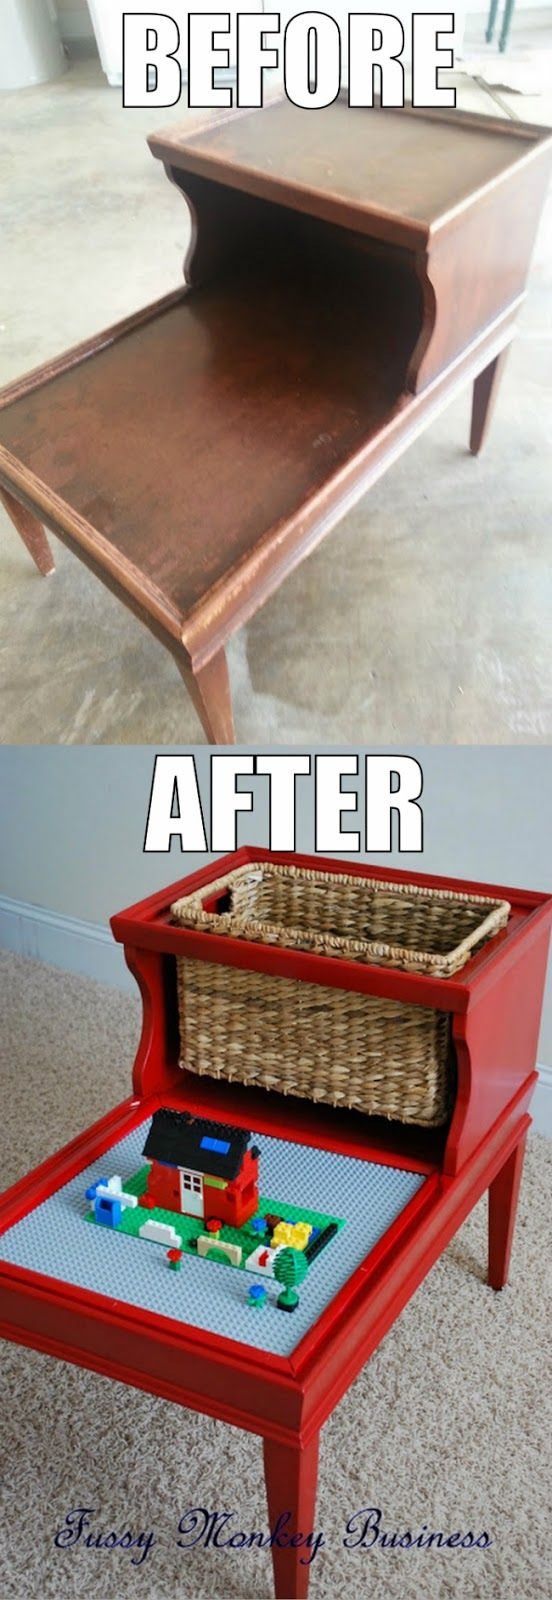 [Mr. Goodwill Hunting]: BEFORE and AFTER have the tables, still deciding if I should switch basket and play area spots...